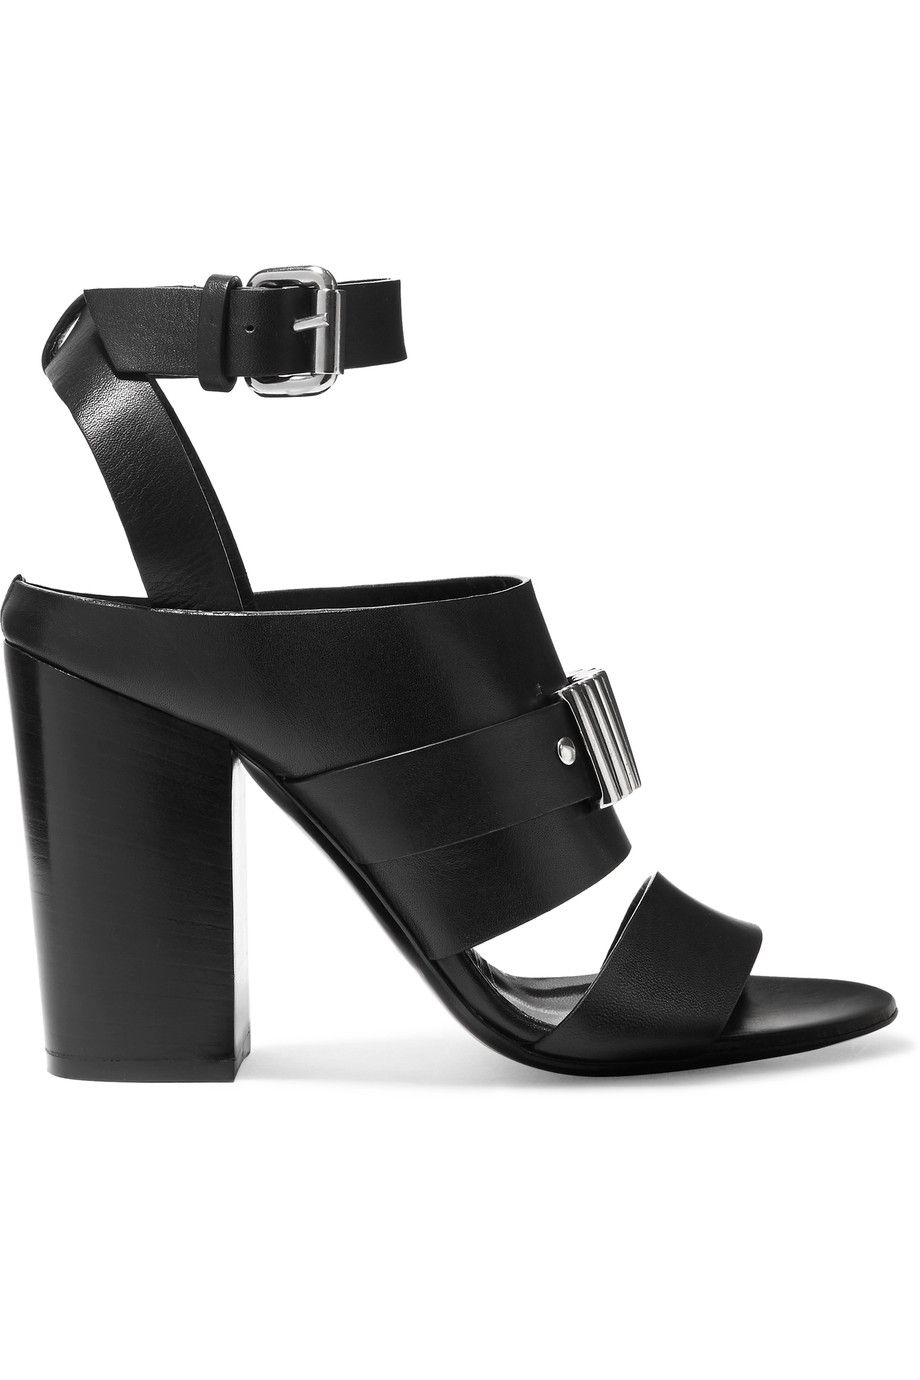 McQ Alexander McQueen Leather Embellished Sandals sale online shopping clearance enjoy X9FIKlJE